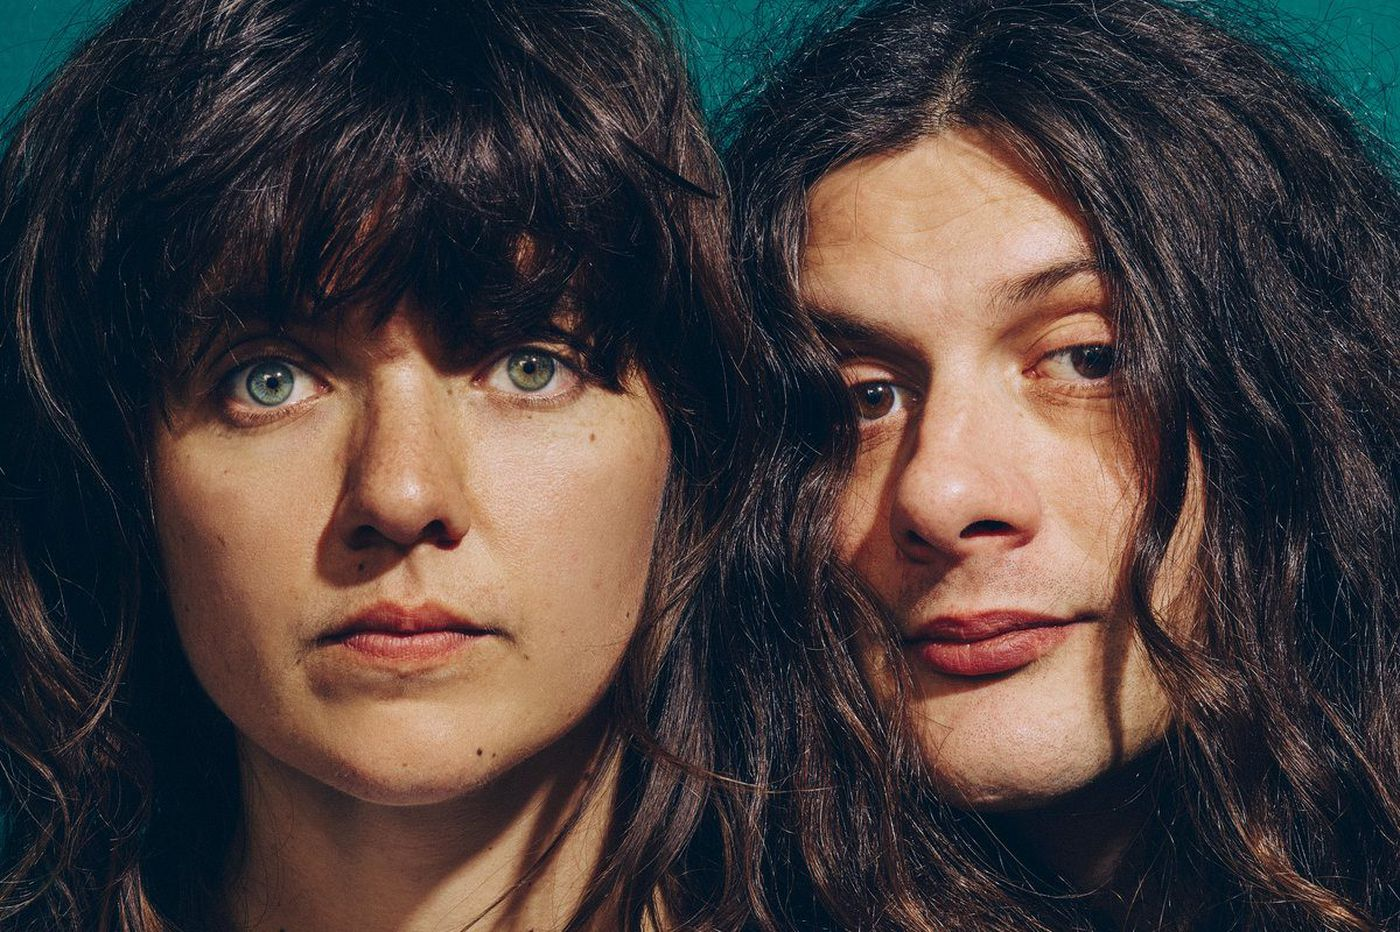 How Kurt Vile and Courtney Barnett got to hang out together even though they live on opposite sides of the world